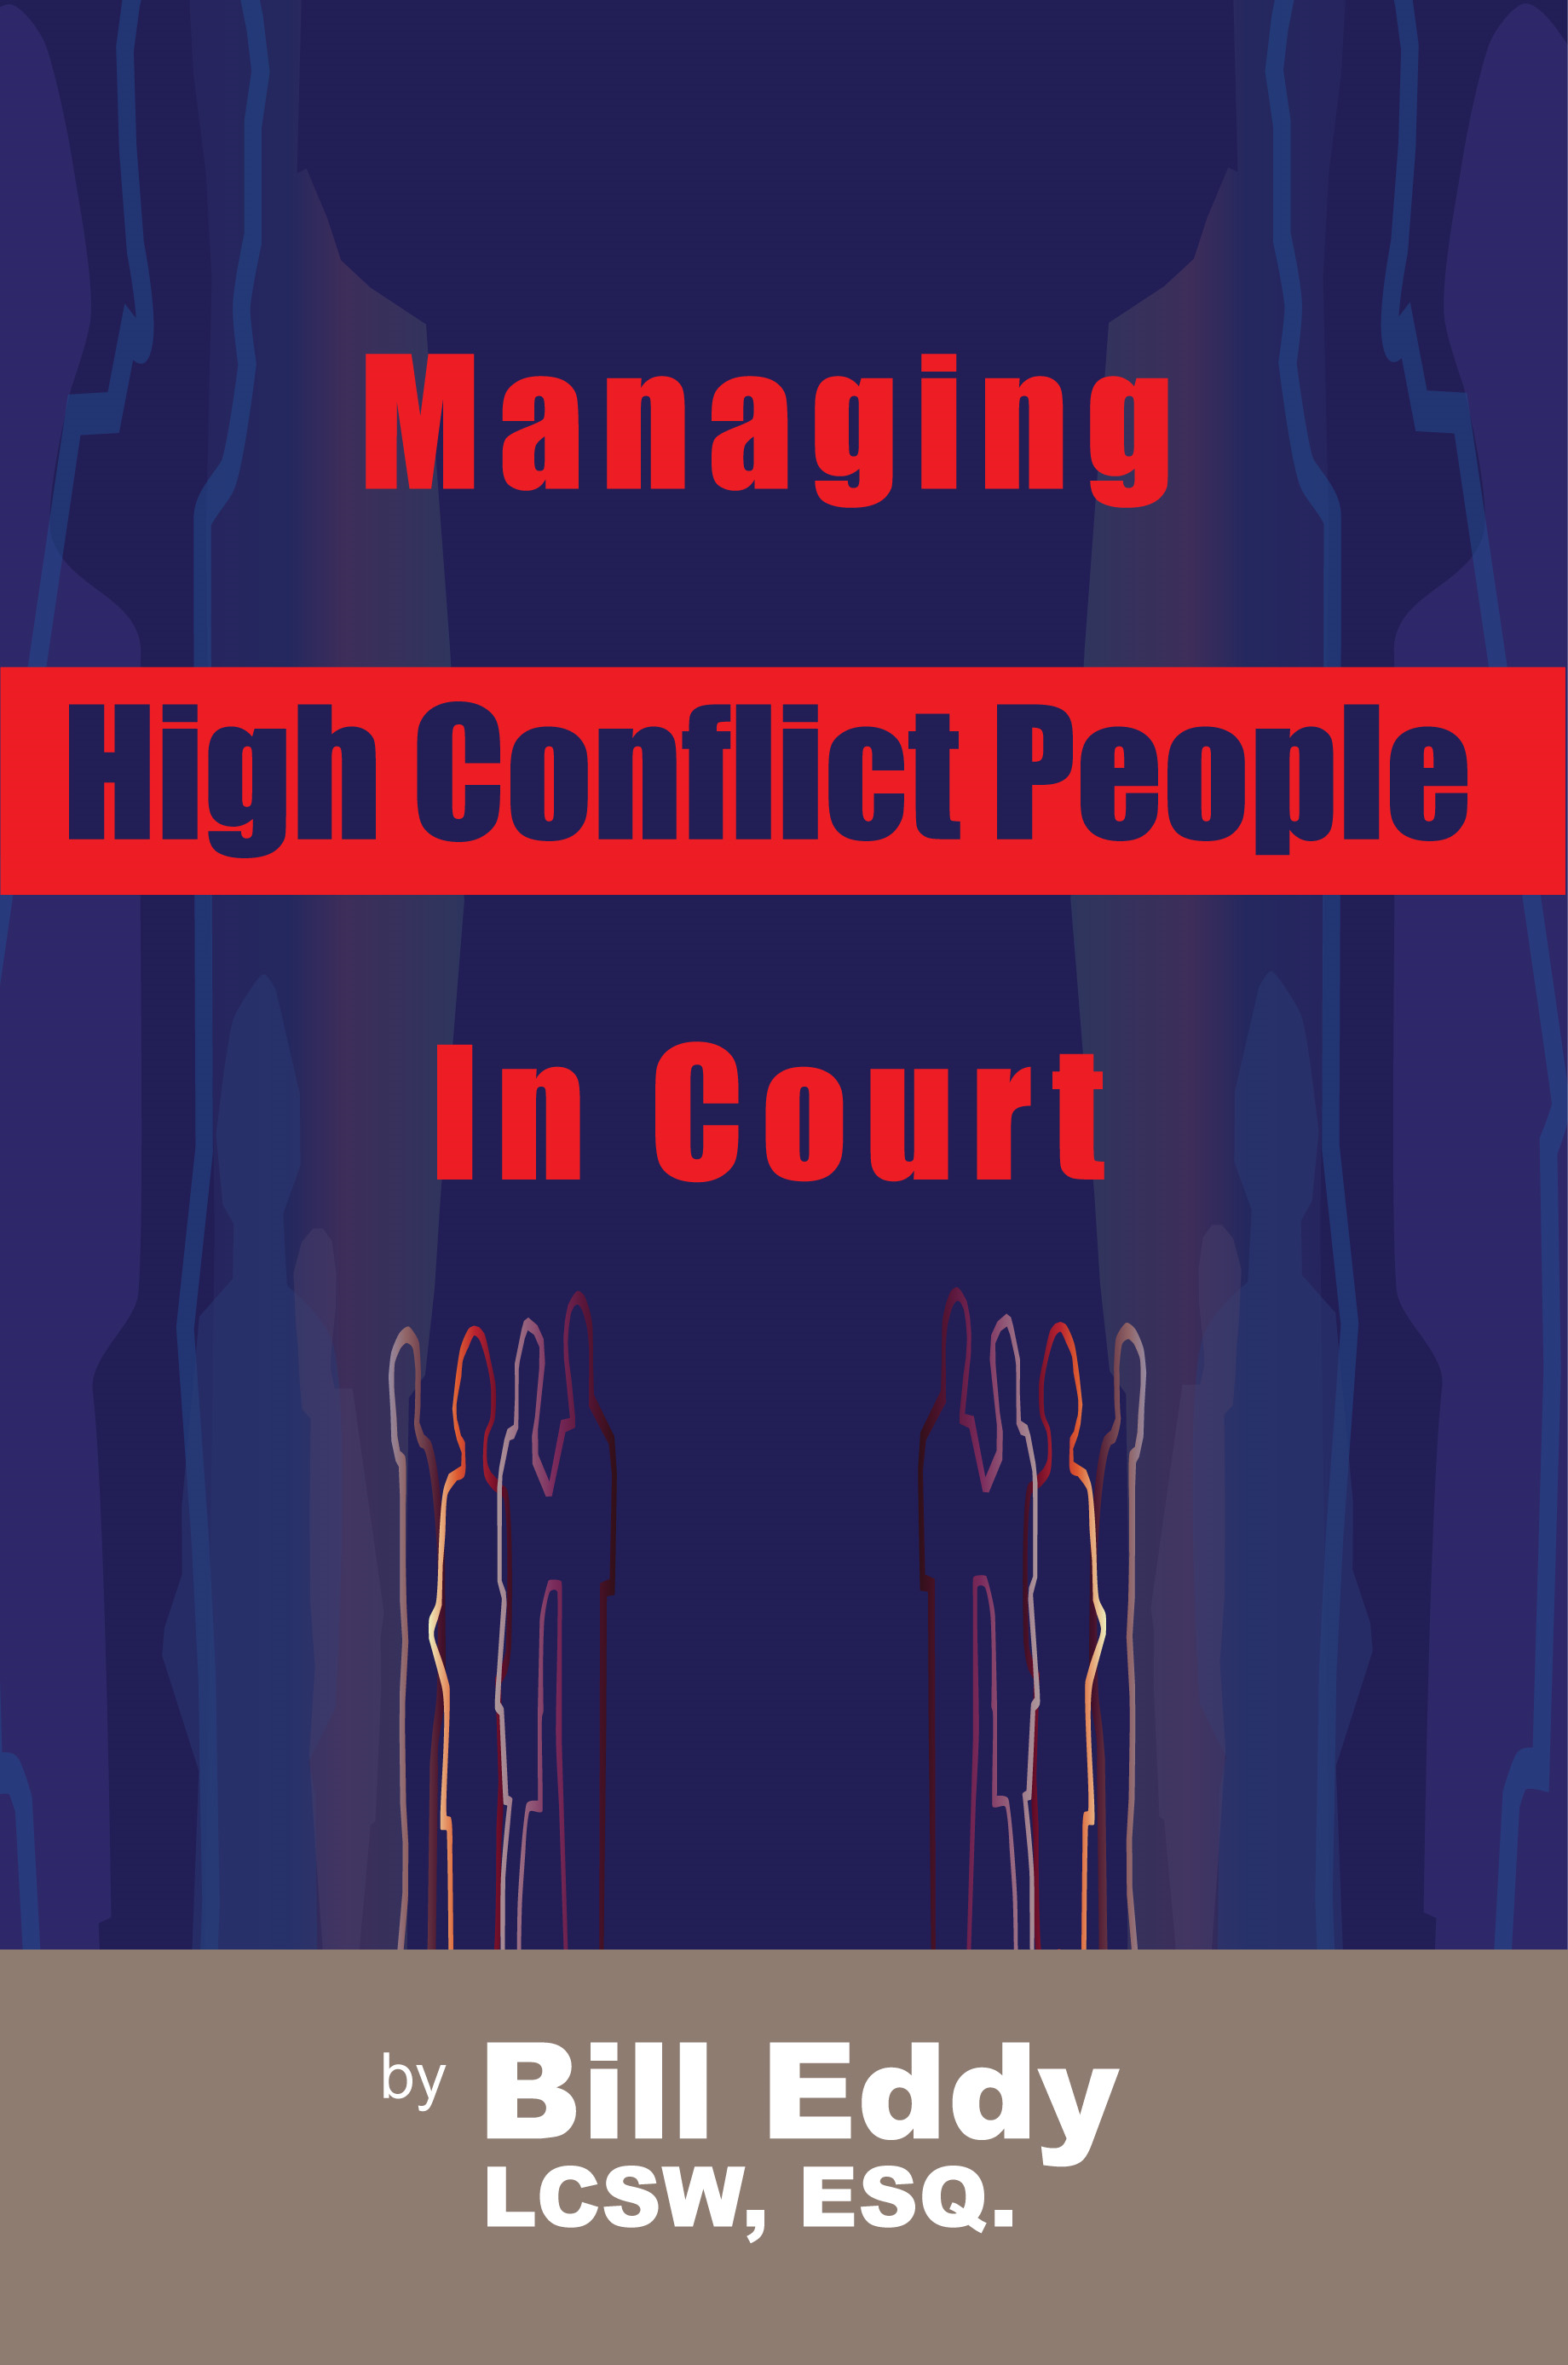 Managing High Conflict People in Court By: Bill Eddy LCSW Esq.